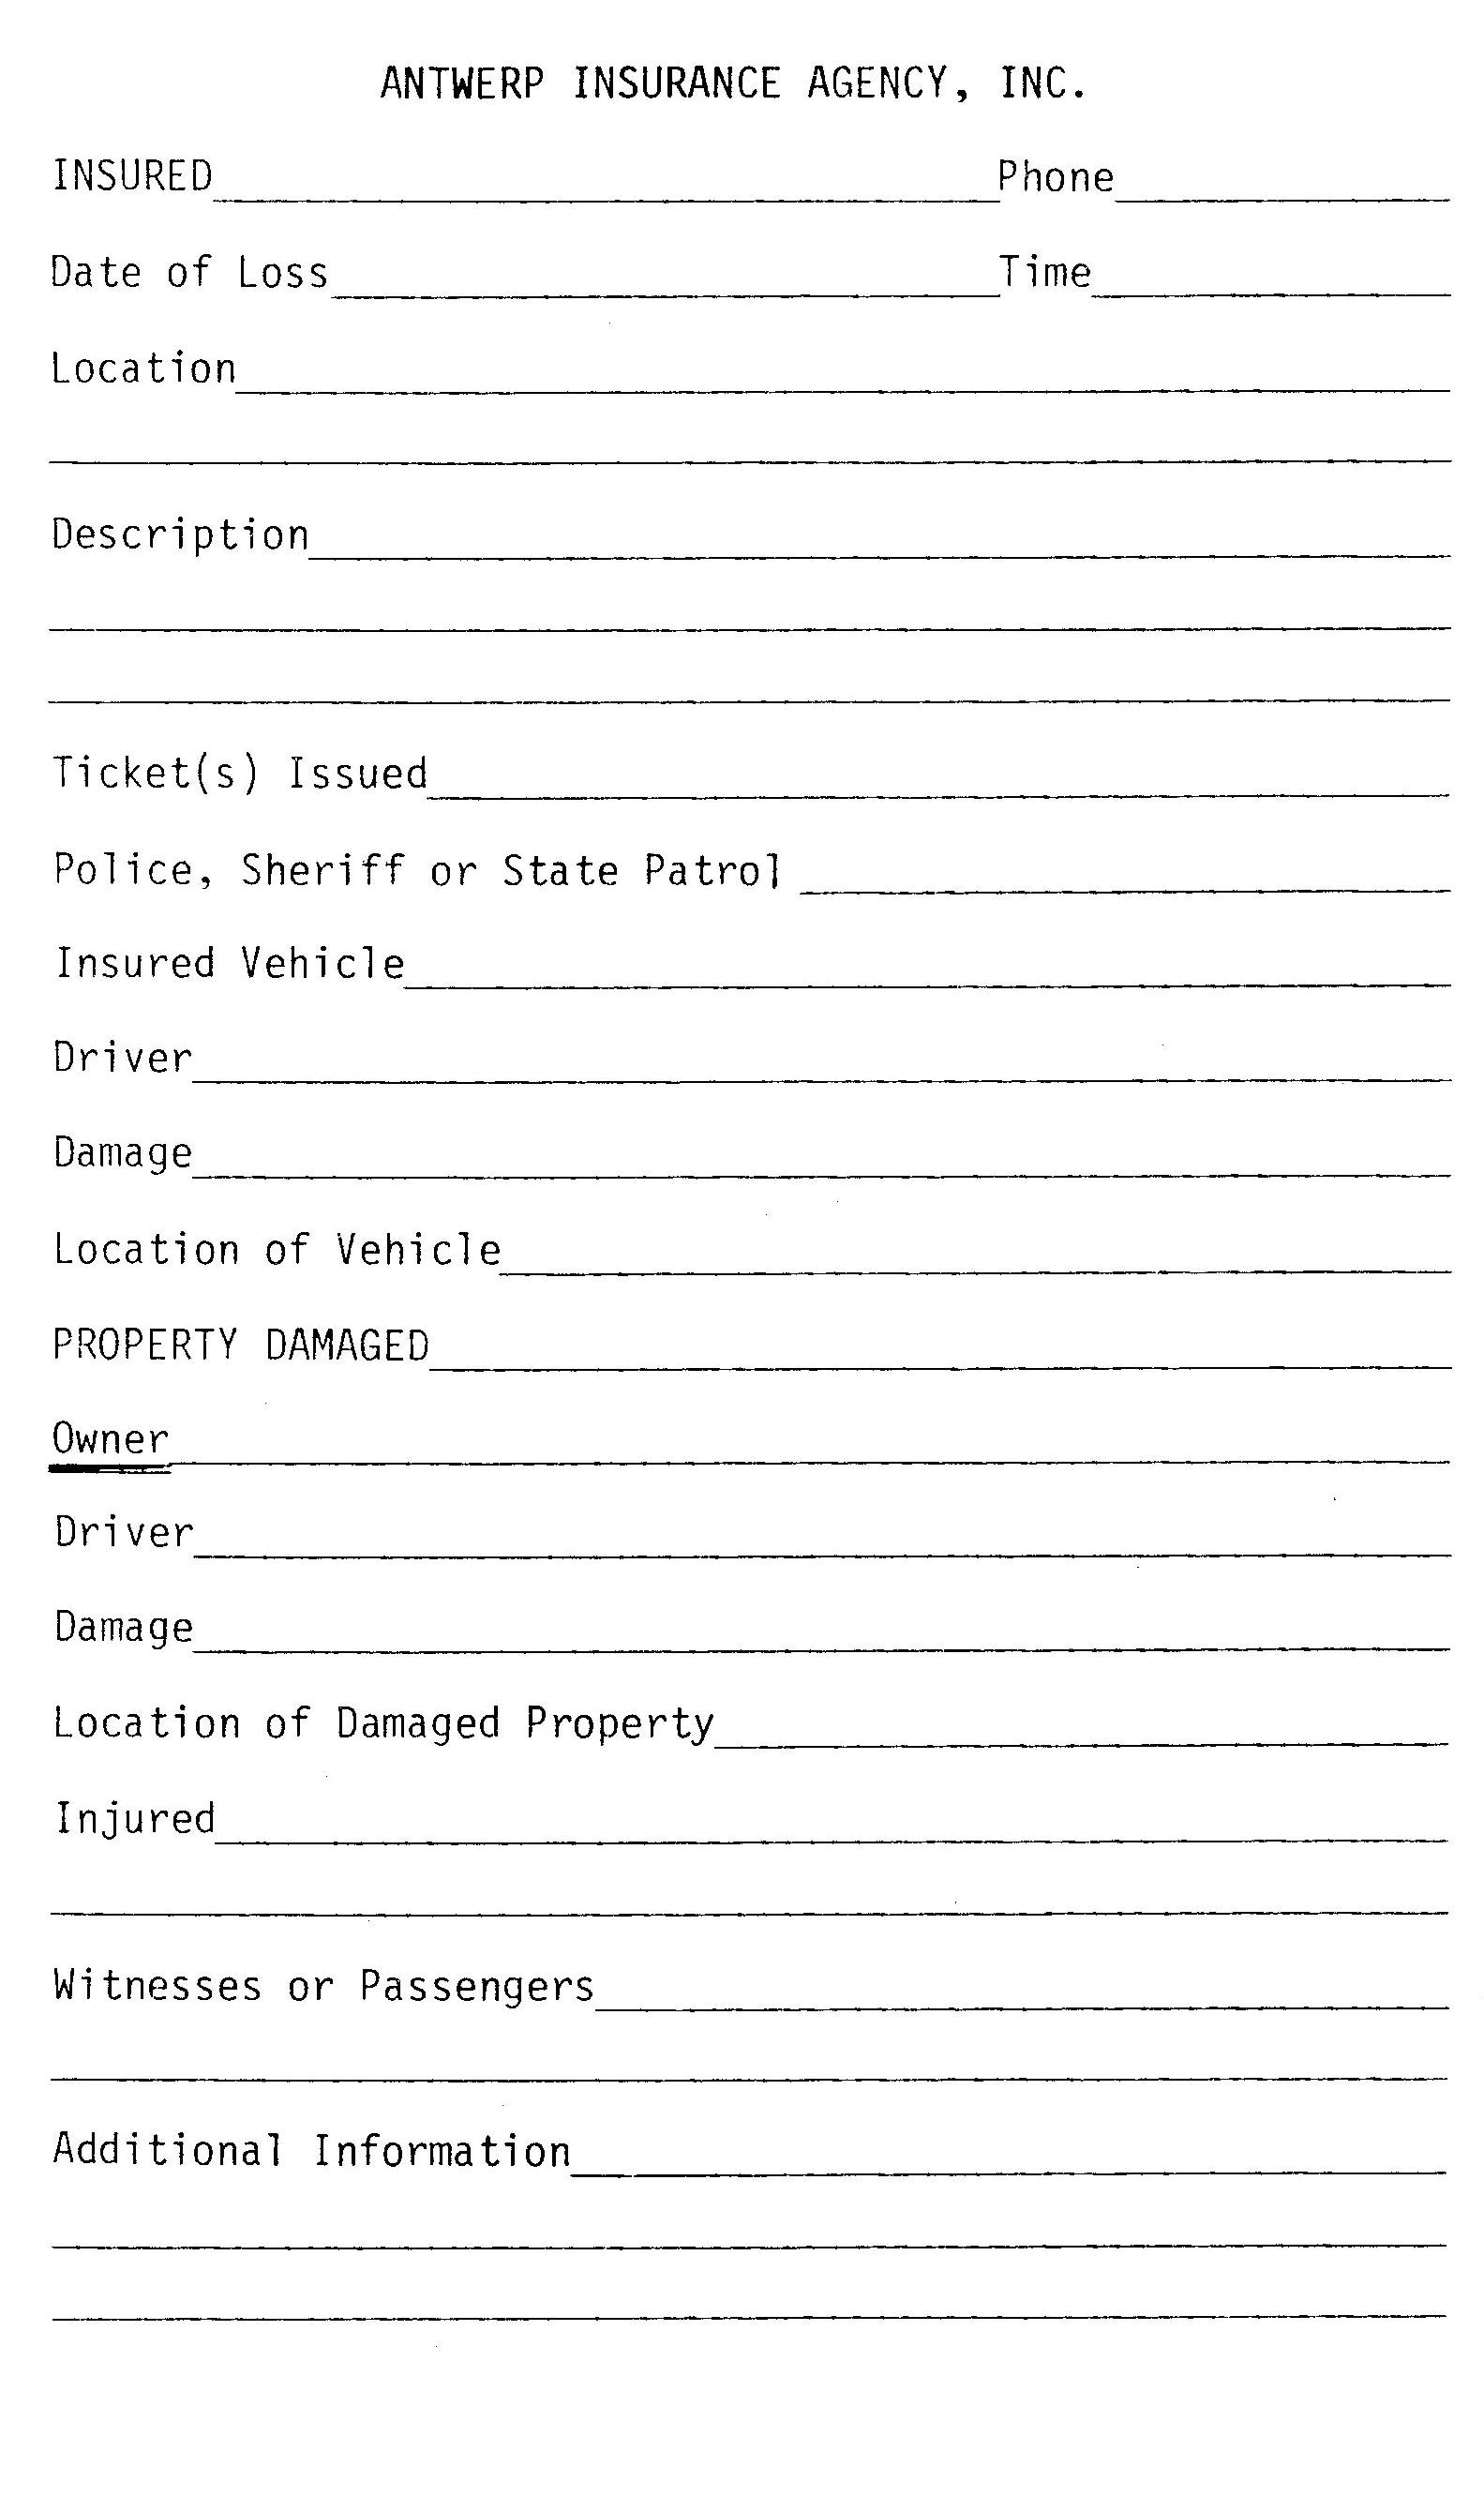 home insurance quote sheet template_9